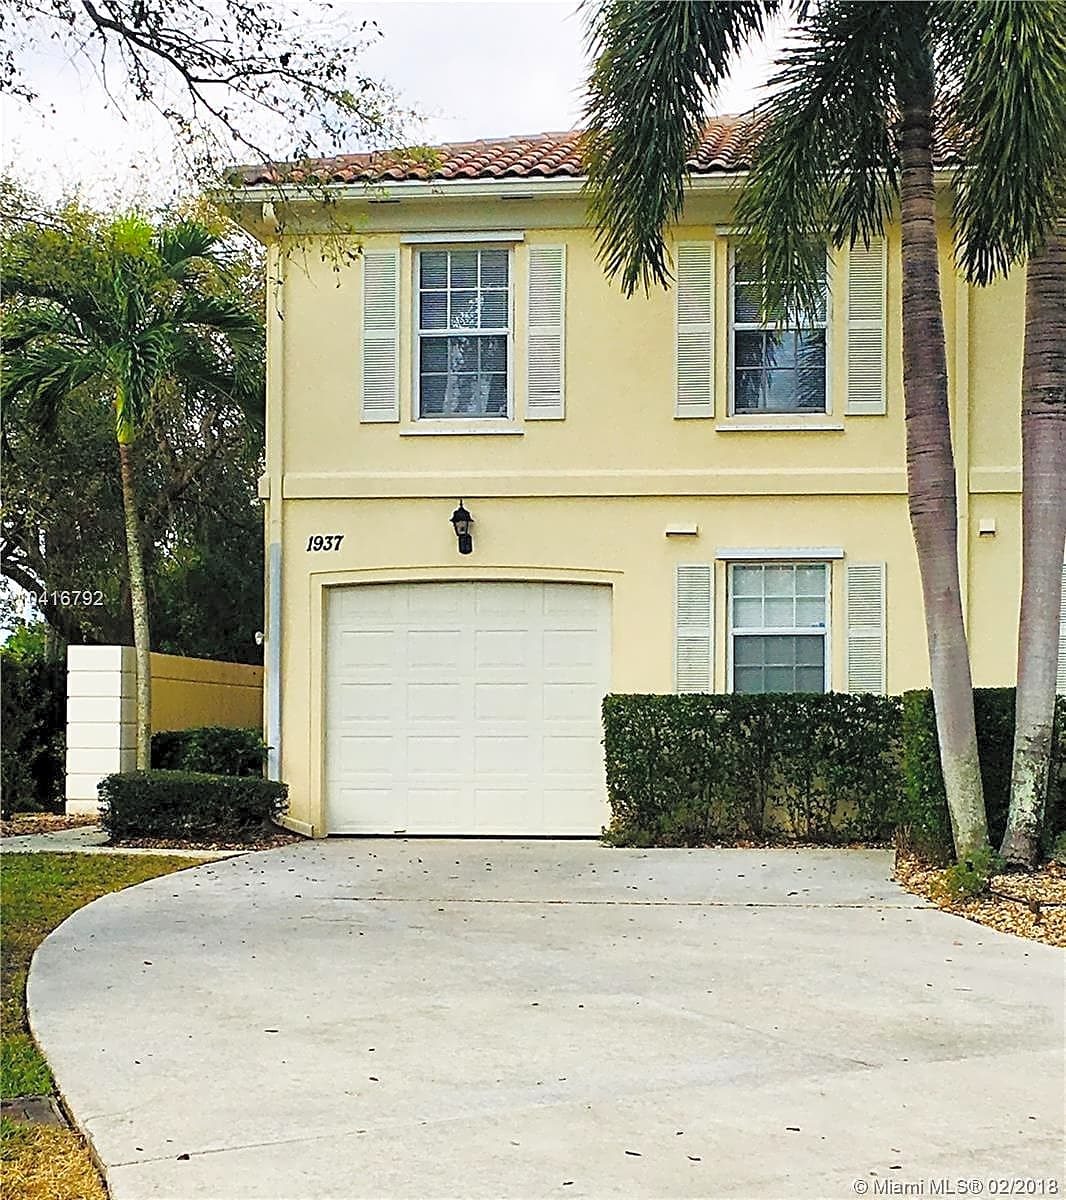 House Rentals West Palm Beach Fl: Incredible End Unit Townhouse Apartments